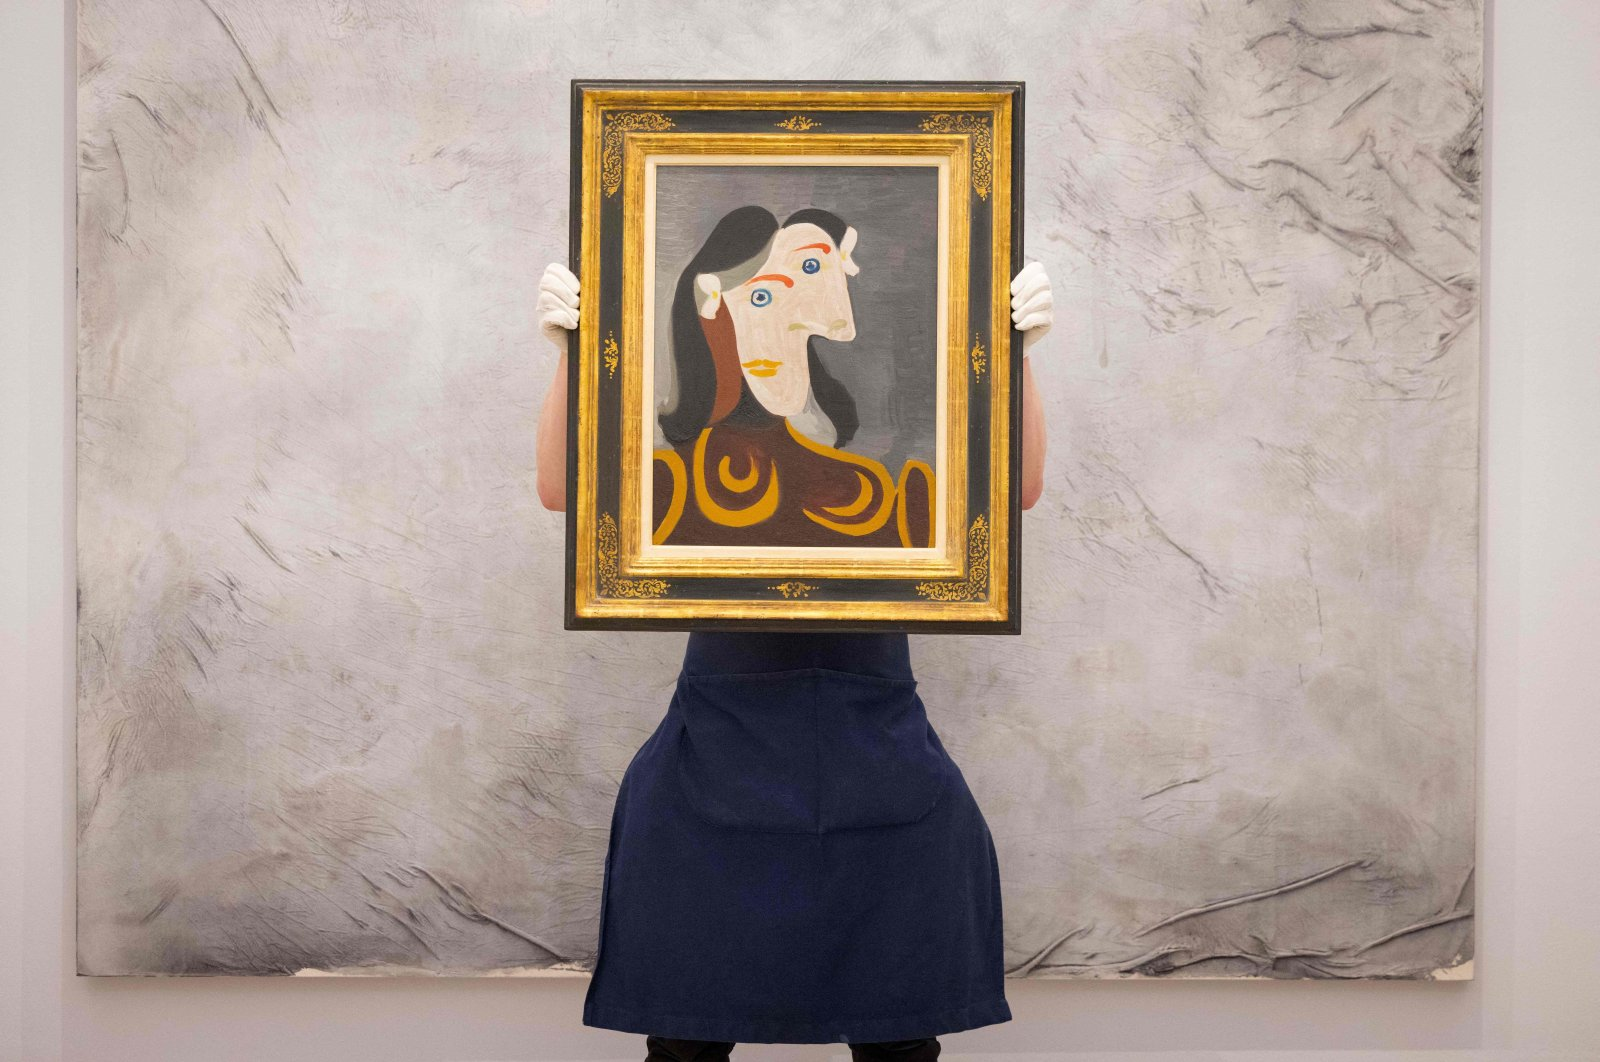 """A gallery worker poses with an artwork entitled """"Buste de femme a la robe brune"""" (Bust of a woman in a brown dress) by Spanish painter Pablo Picasso during a photocall at Sotheby's auction house in central London, U.K., June 22, 2021. (Tolga Akmen via AFP)"""